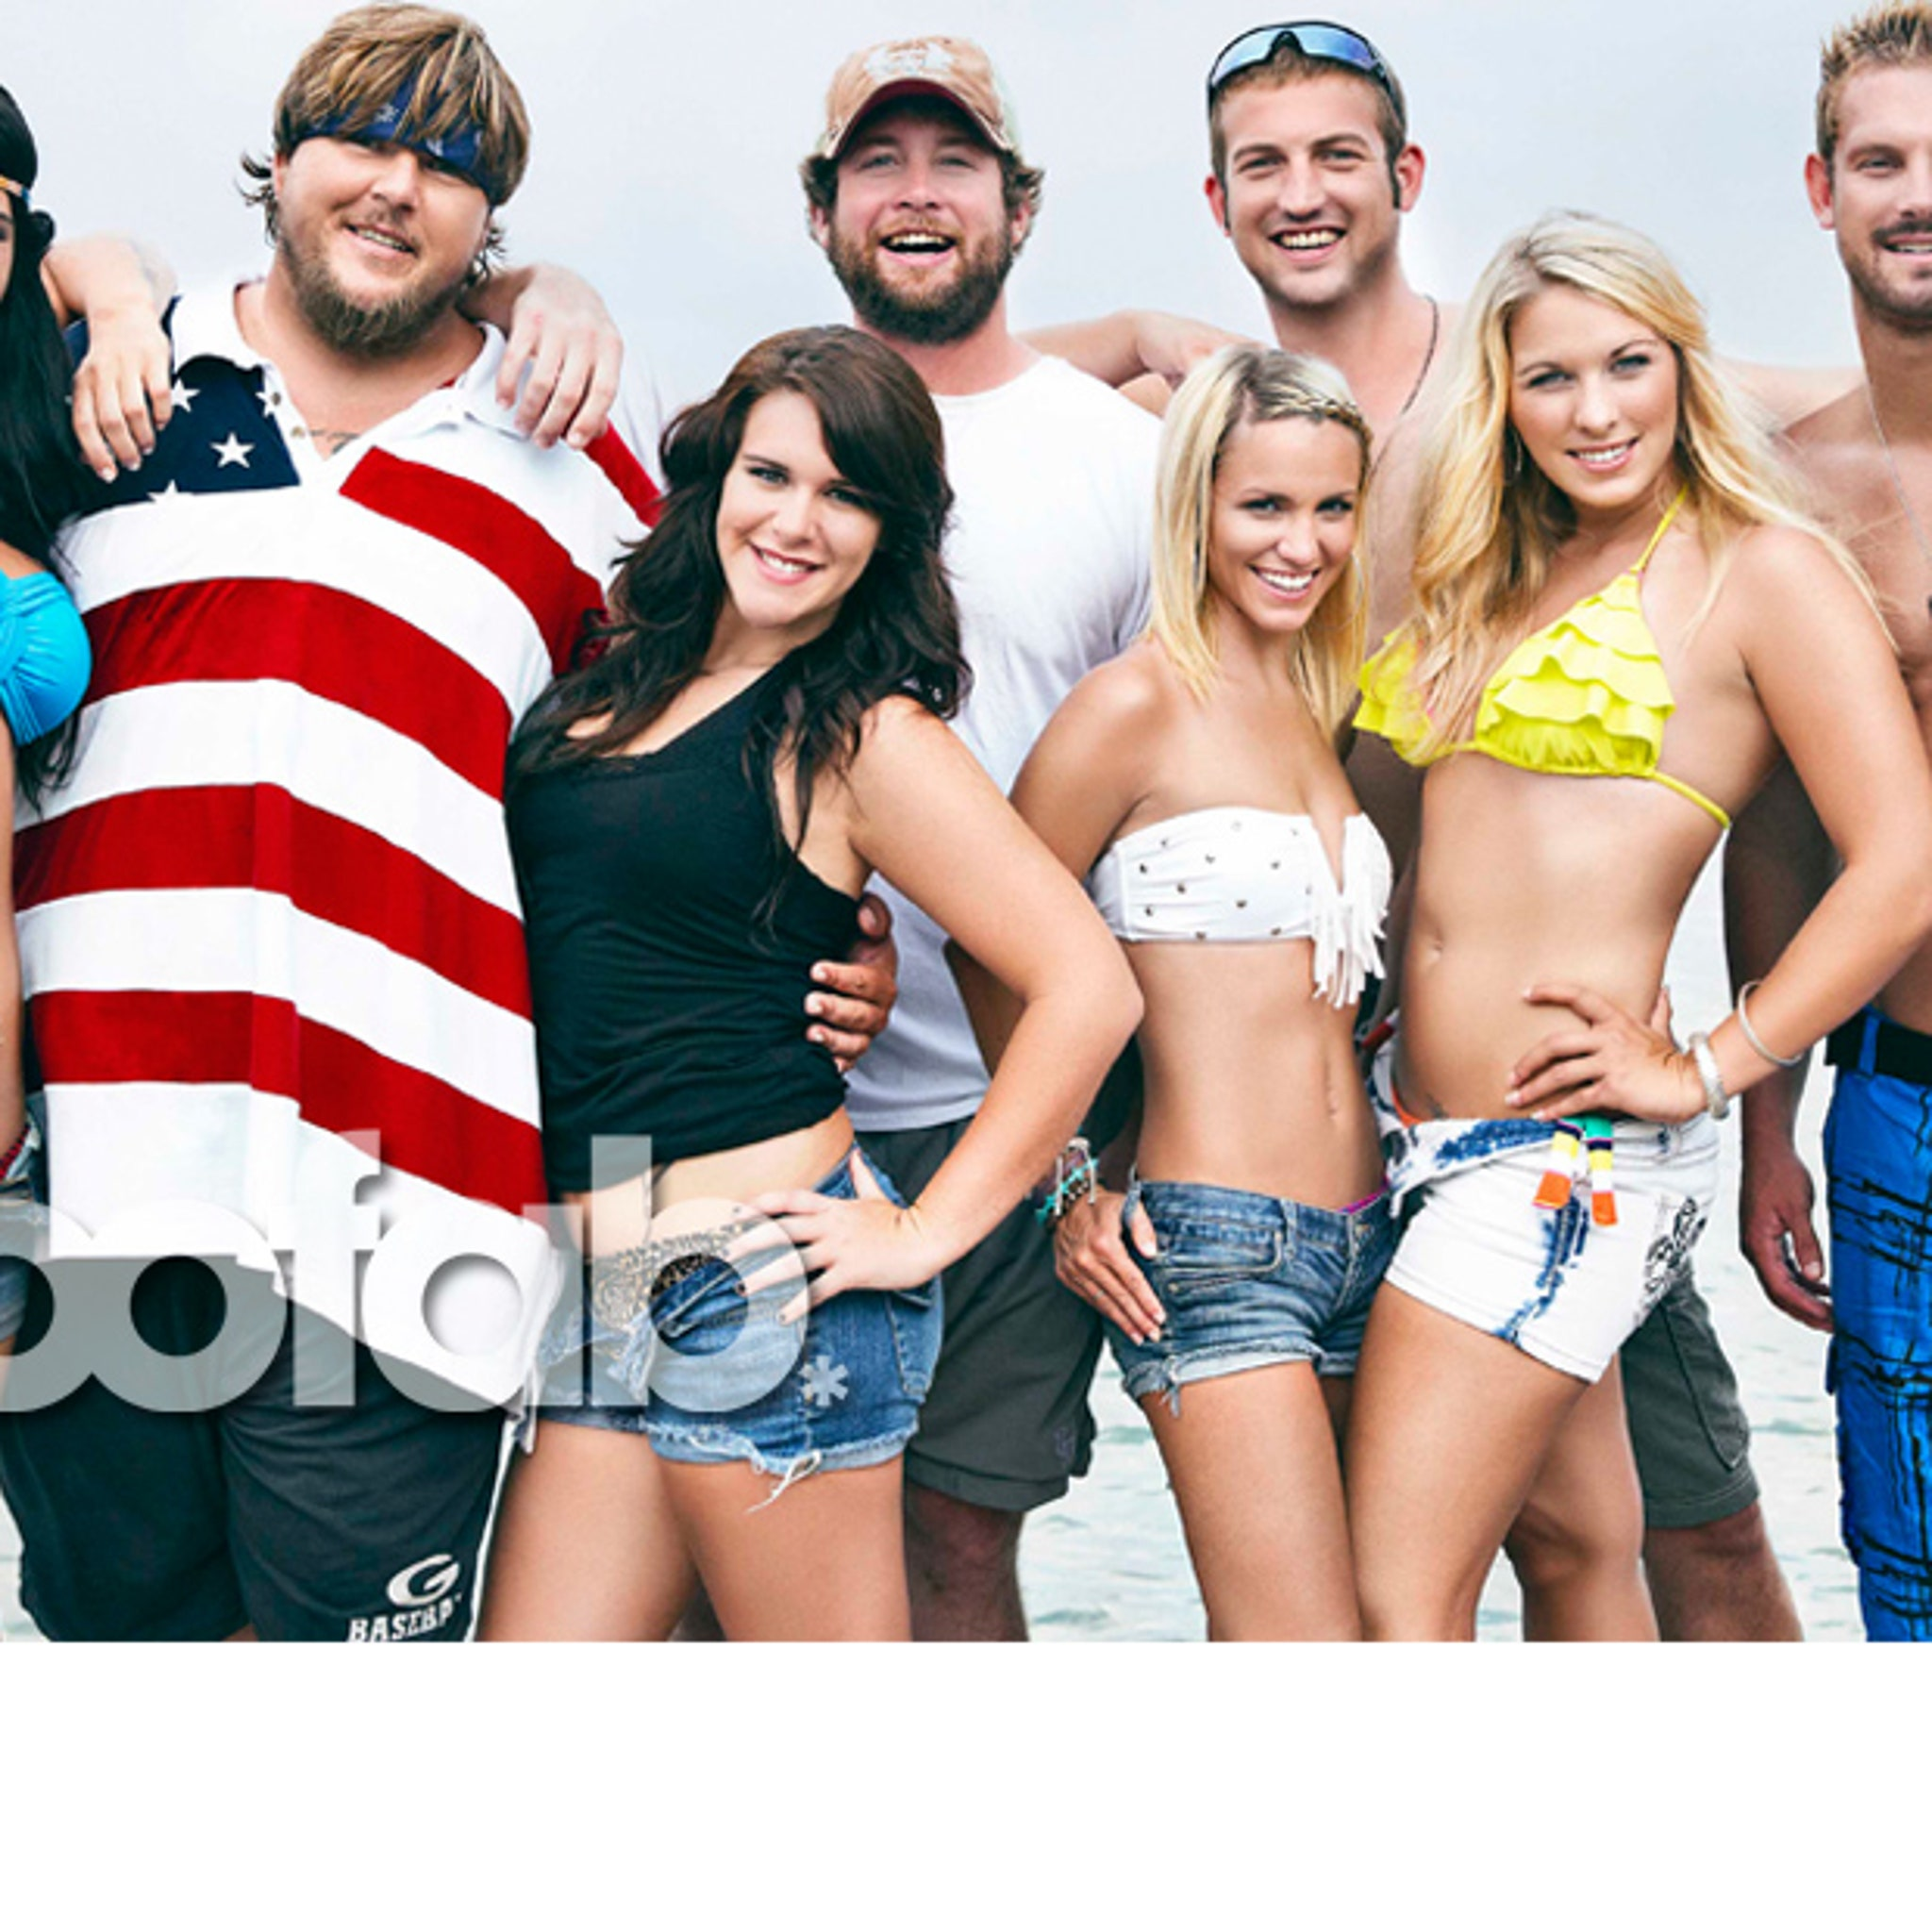 Meet The Party Down South Cast Is This The New Jersey Shore